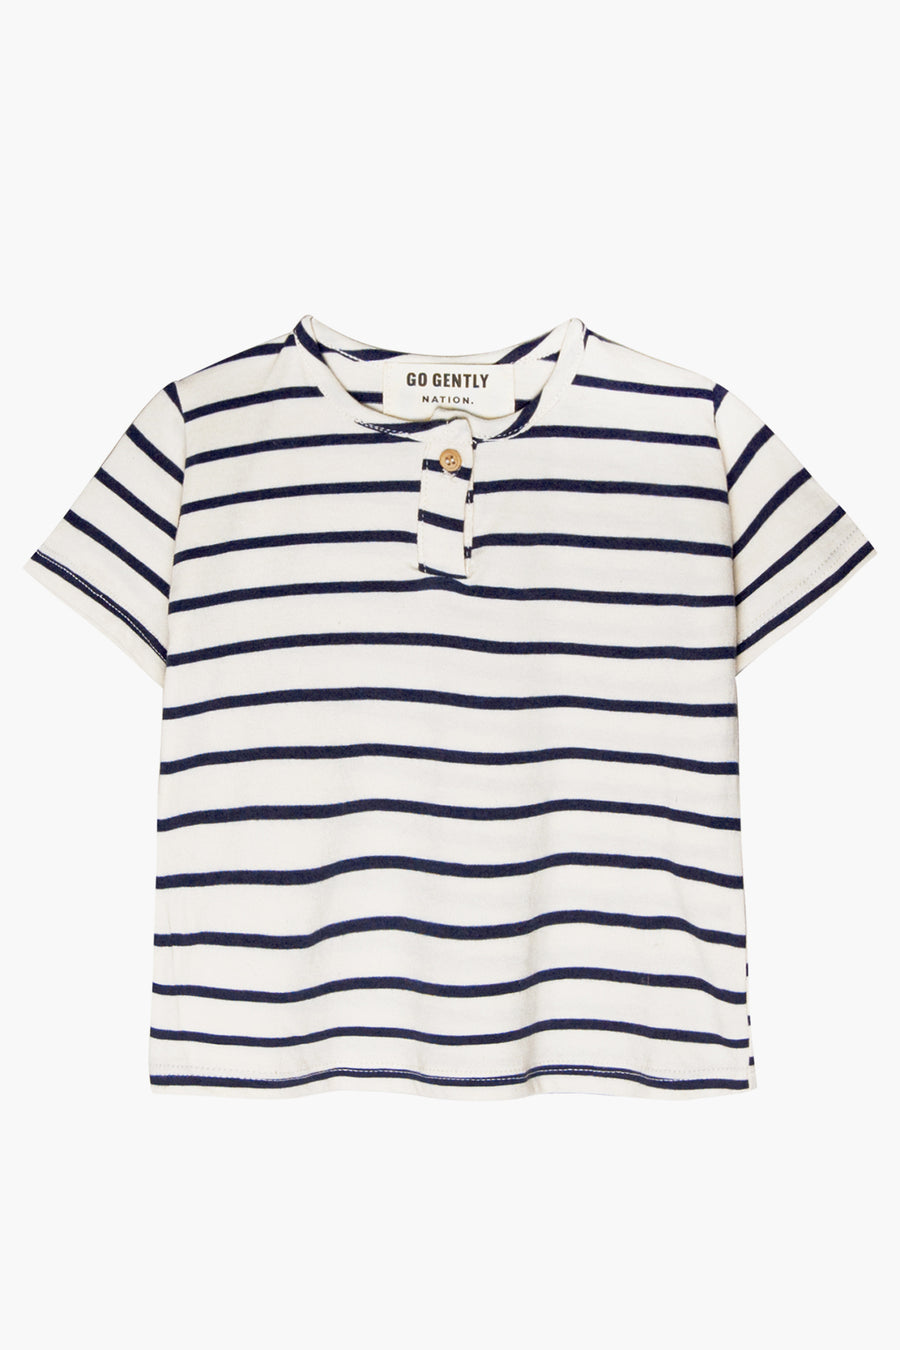 Go Gently Nation Jersey Henley - Navy Stripe